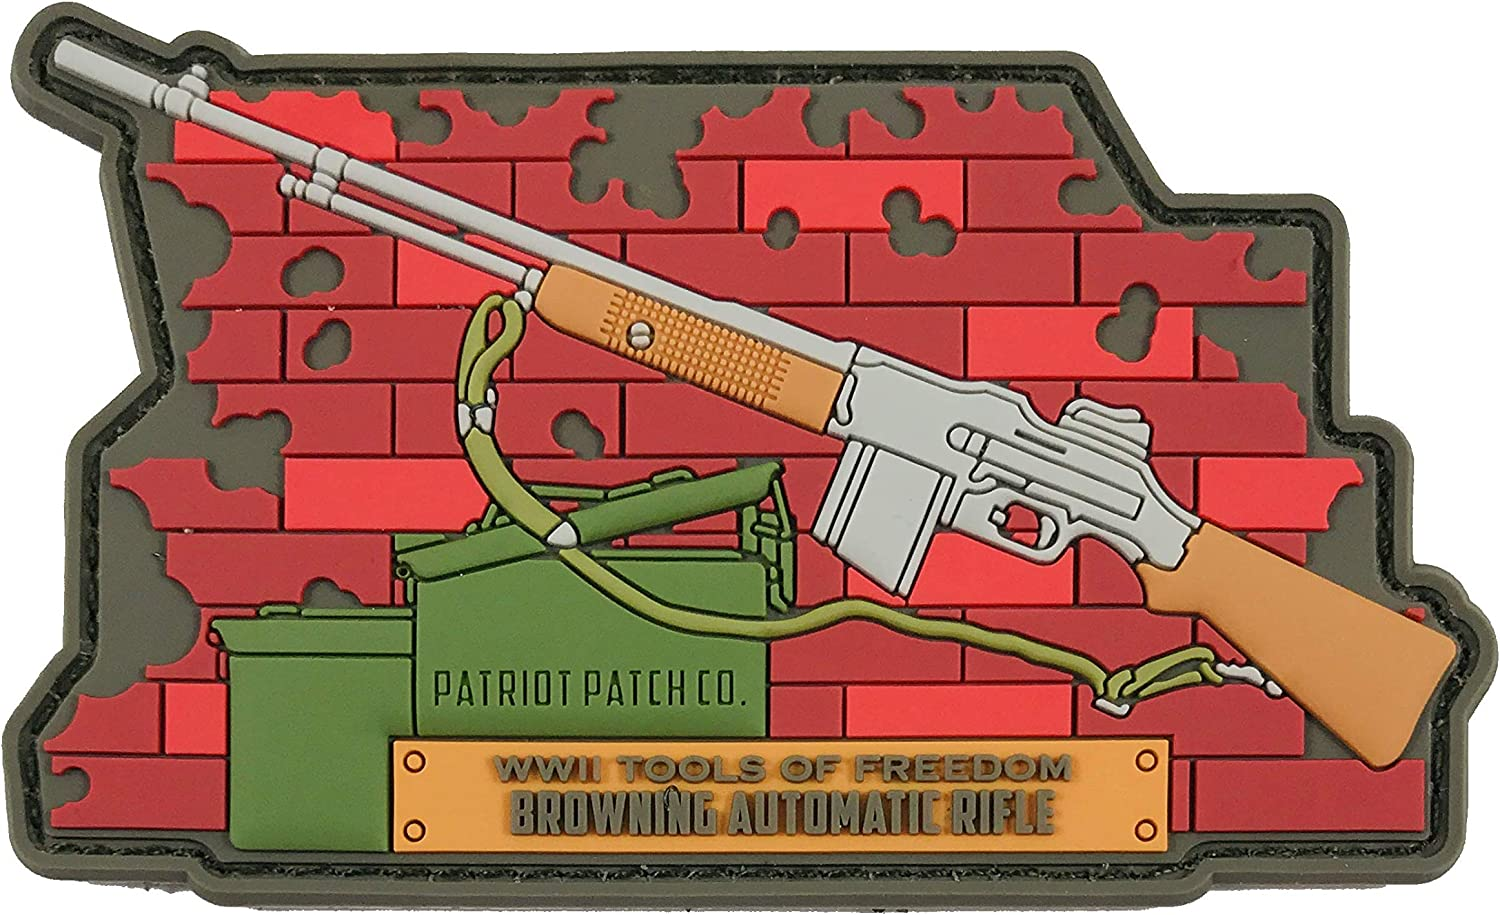 Patriot Patch Co - Gun Patches Historical Austin Mall WWII New product